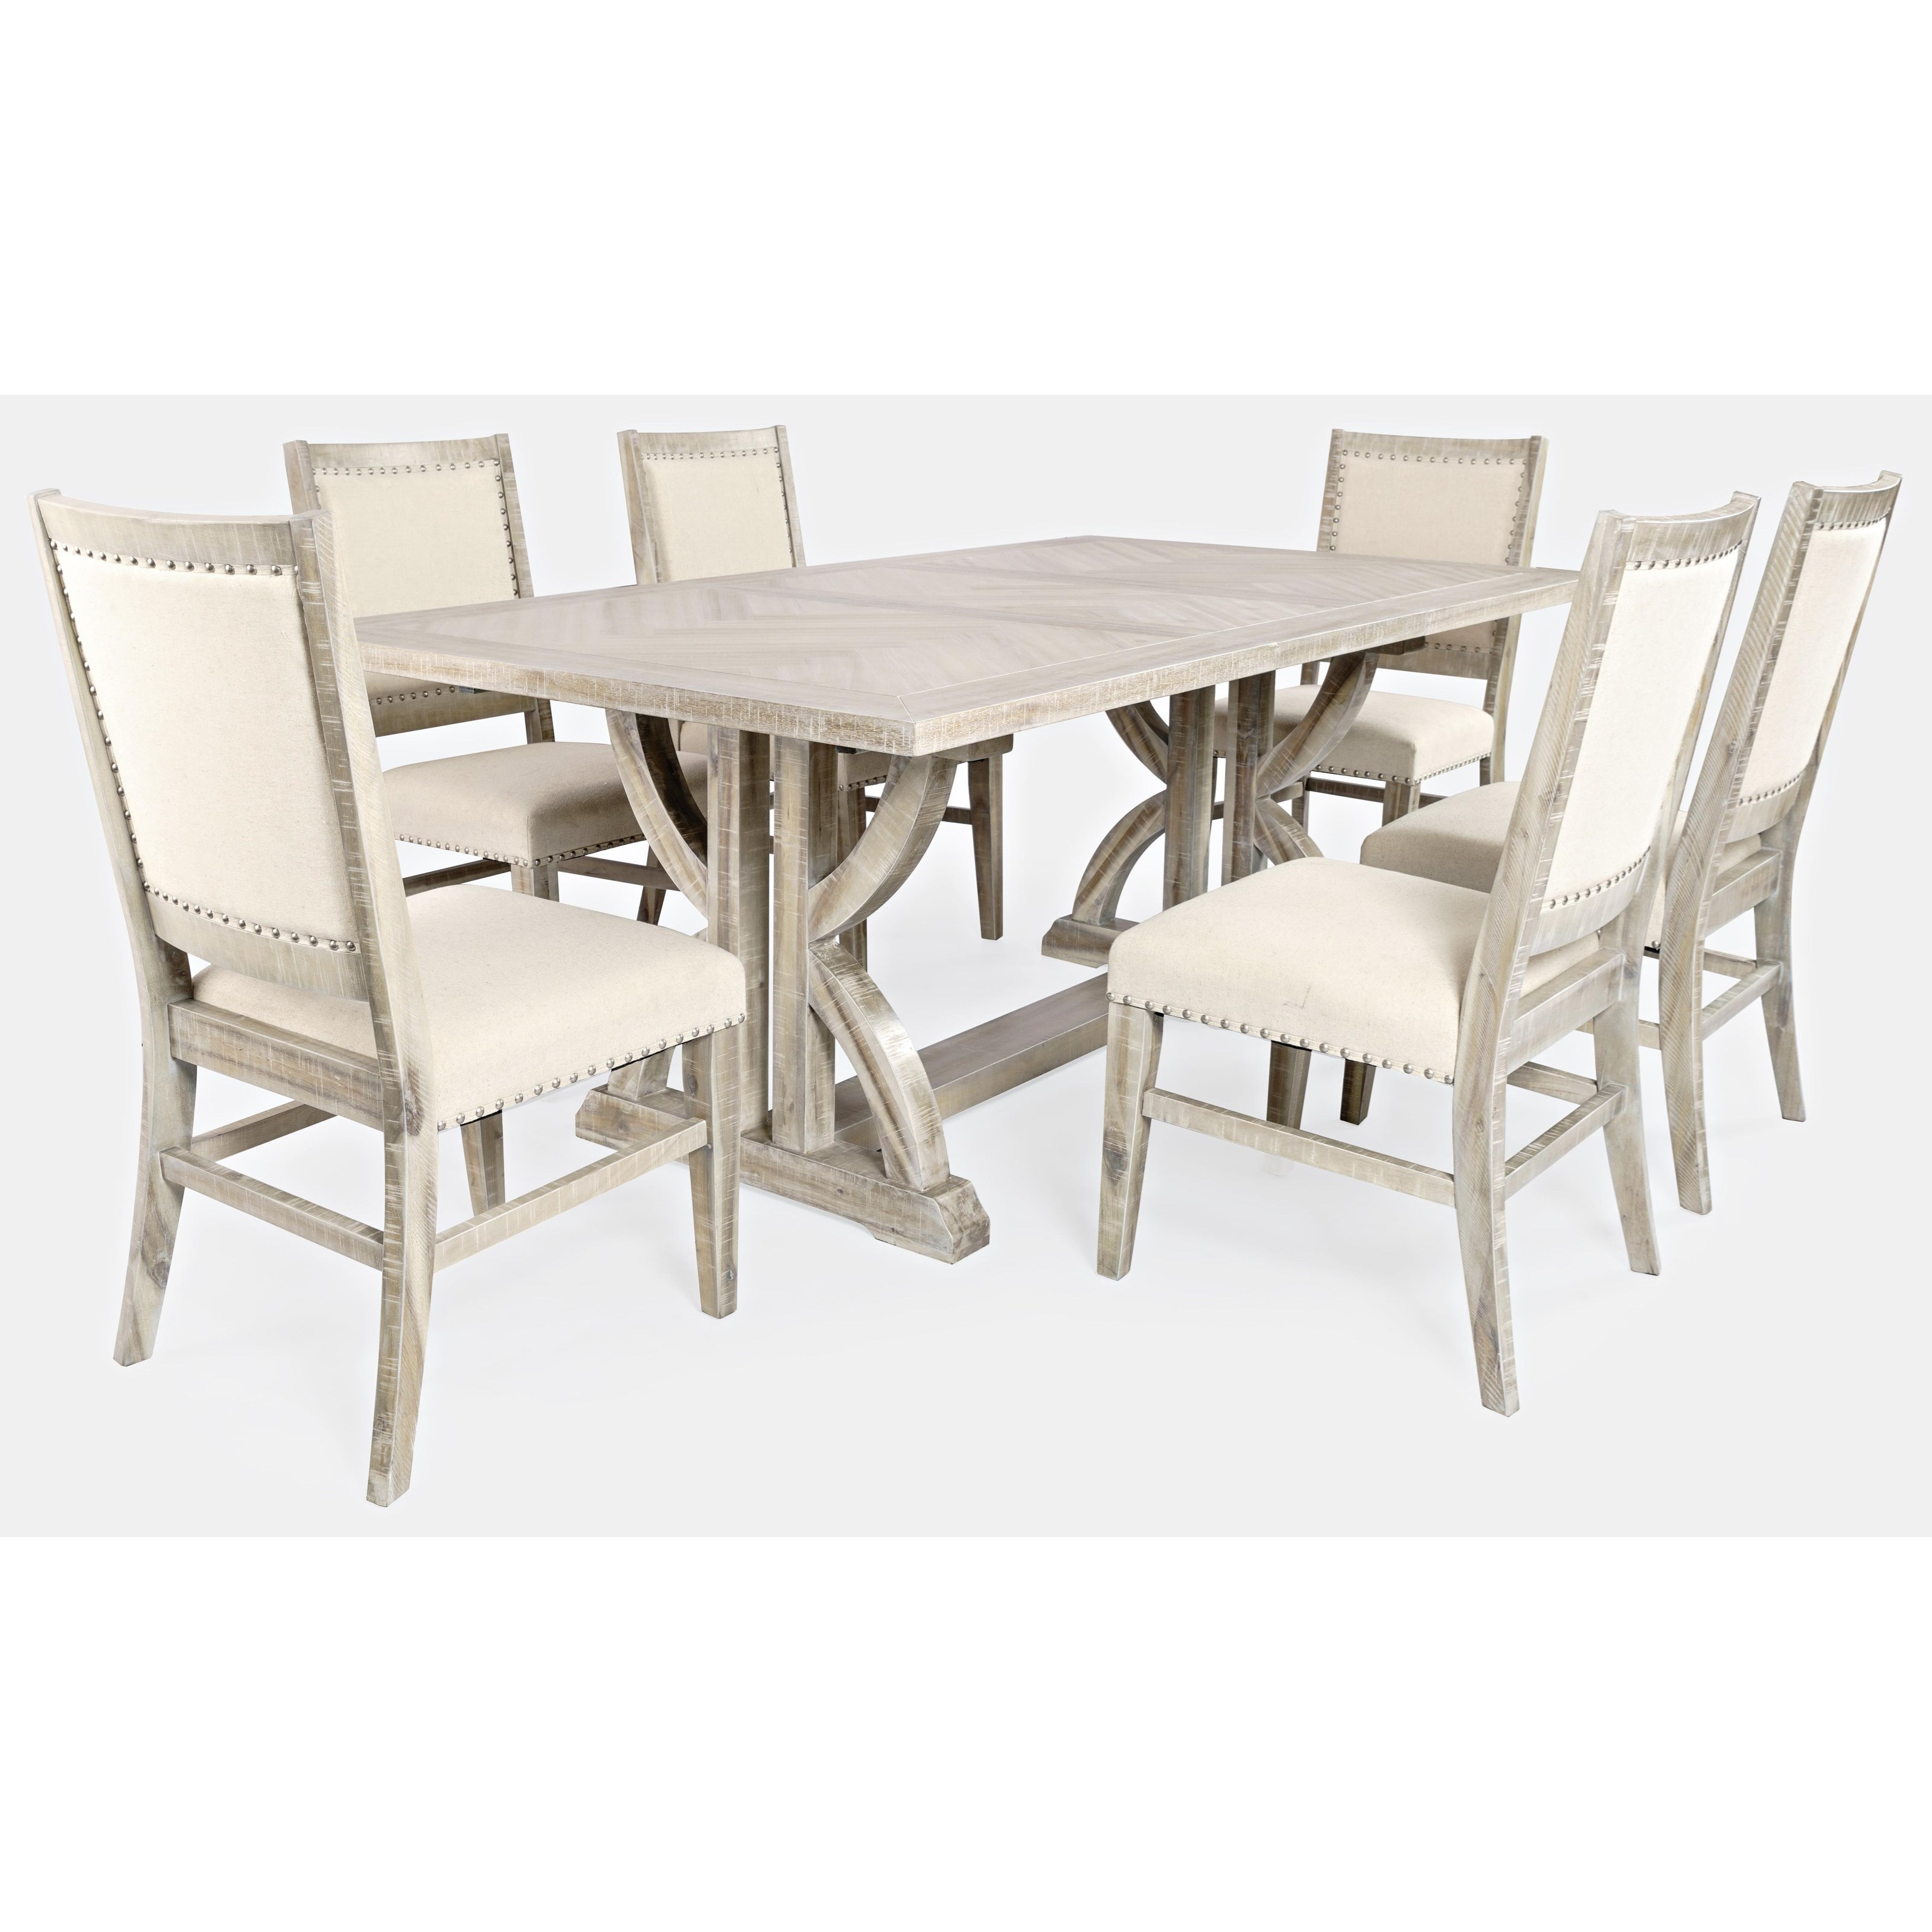 Fairview 7-Piece Dining Table and Chair Set by Jofran at Stoney Creek Furniture